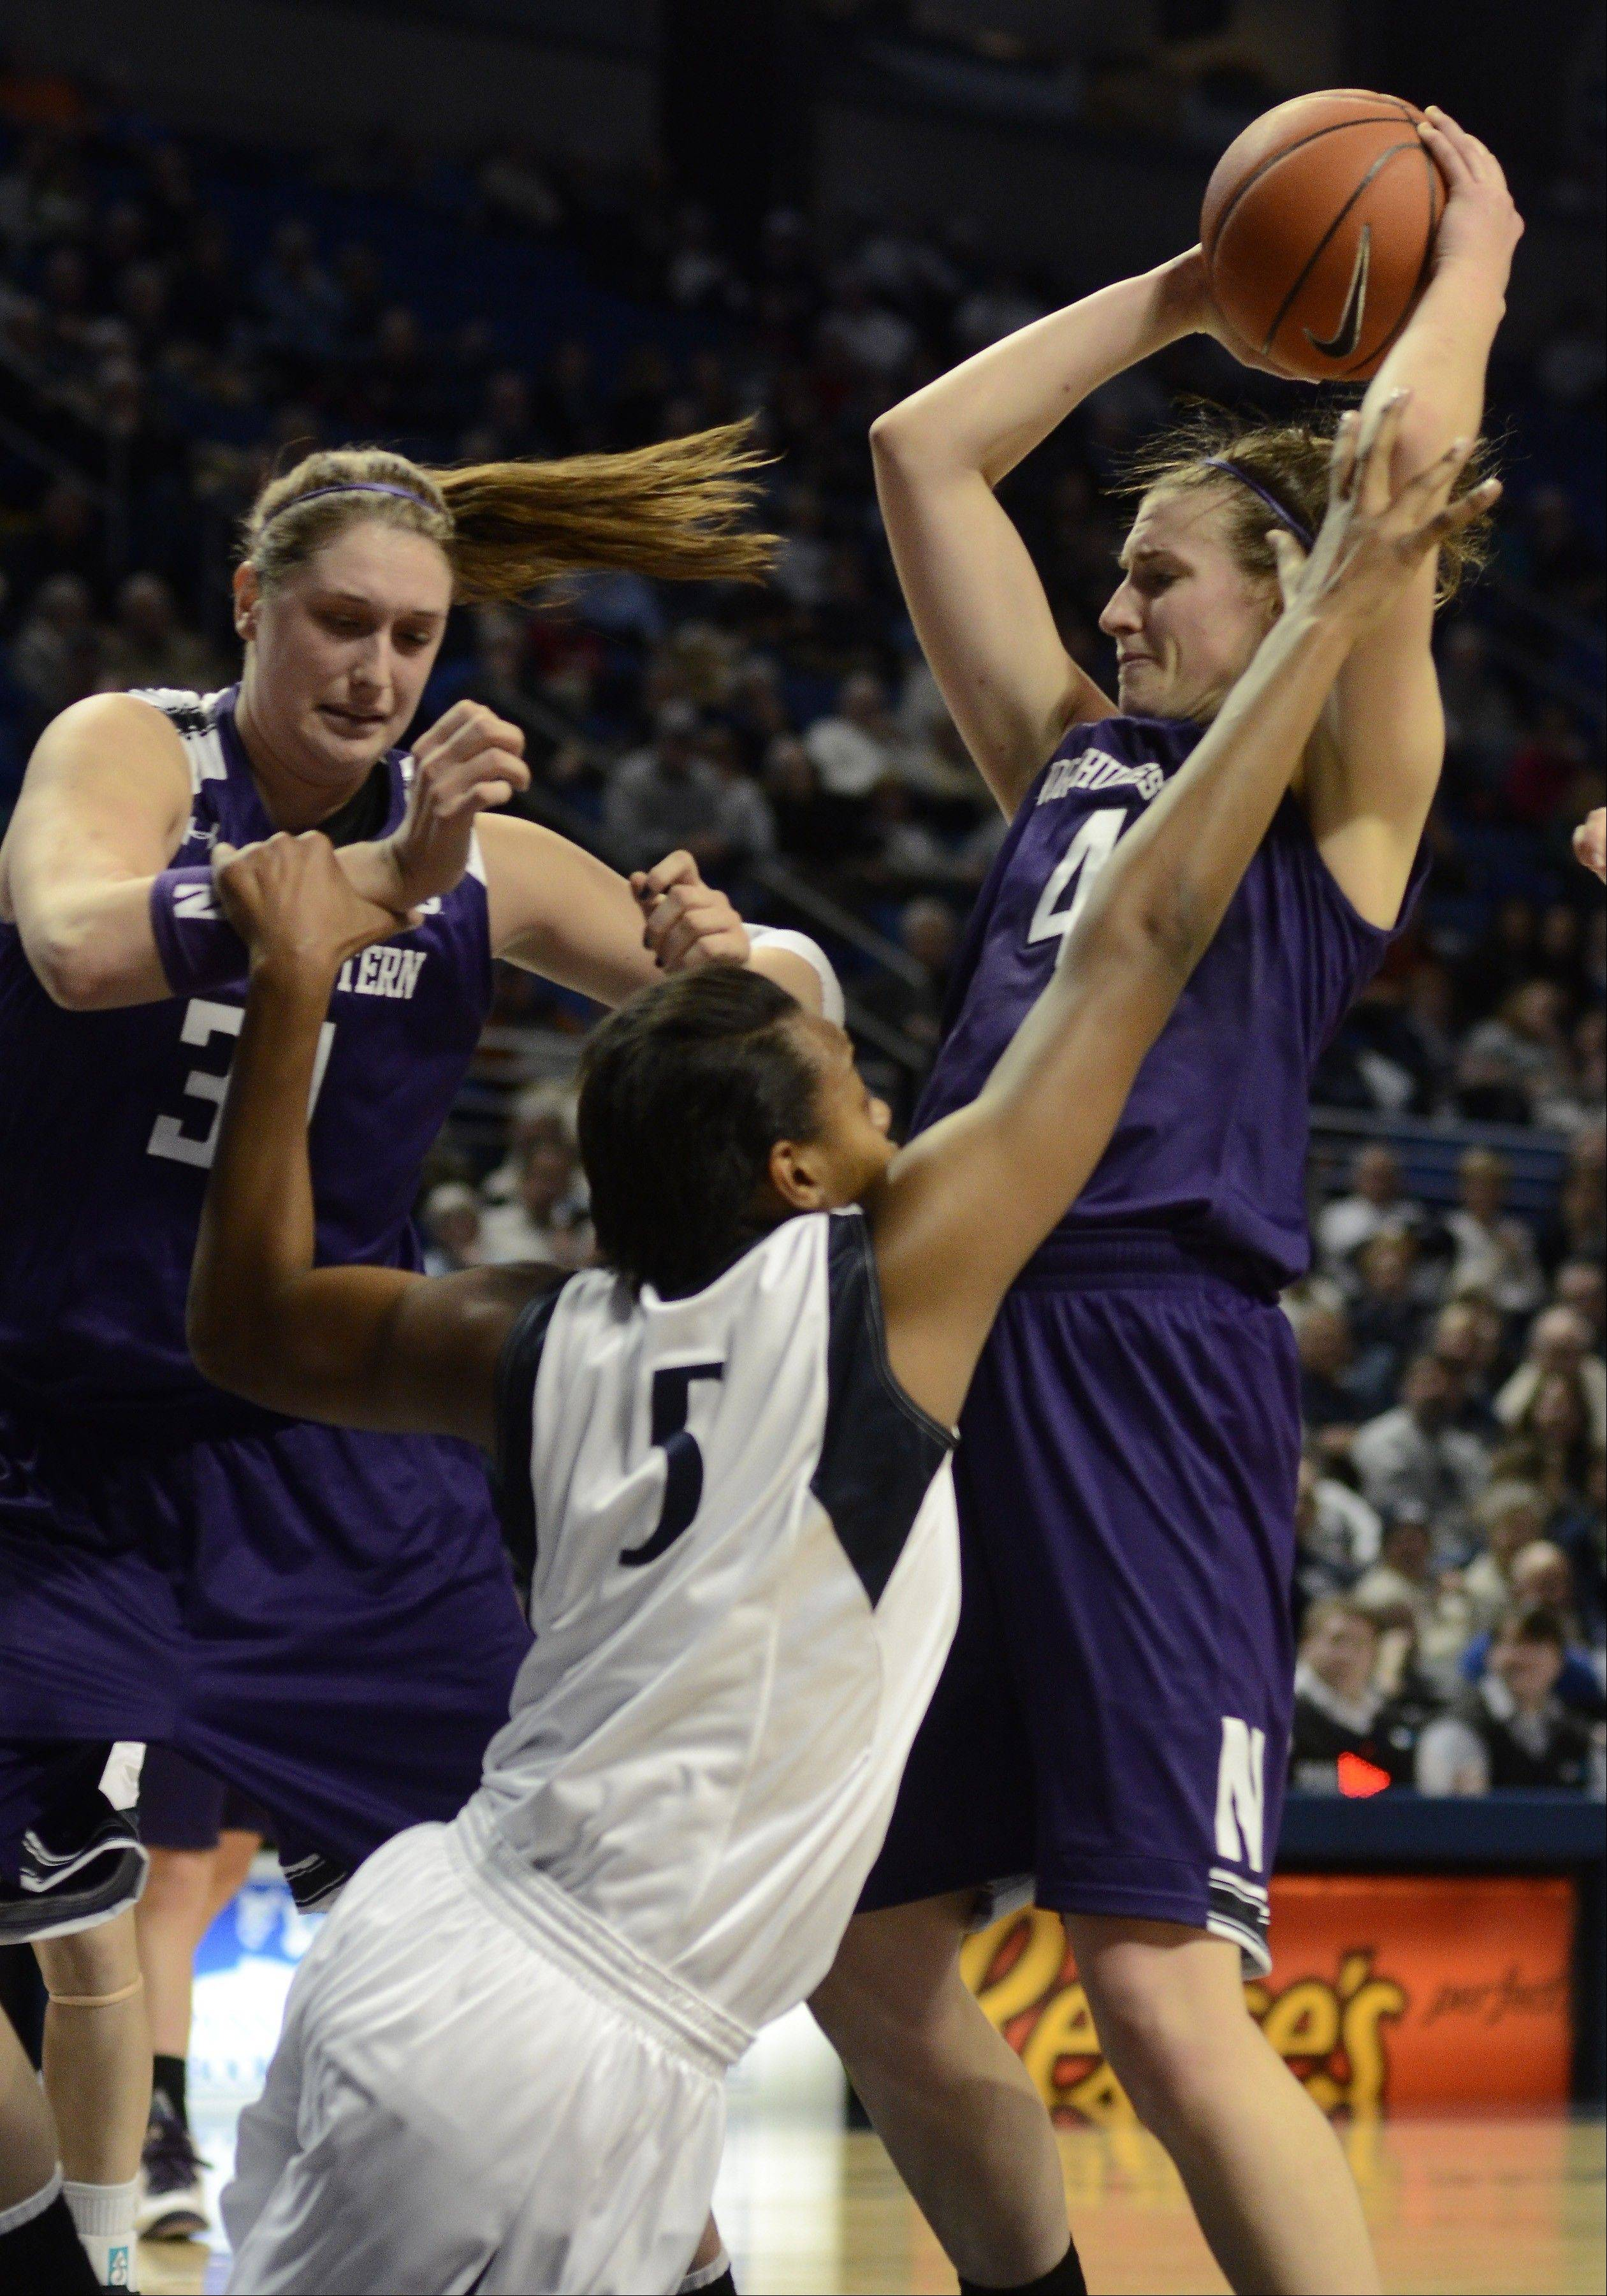 Northwestern, shown here in action against Penn State on Jan. 3, won't have to travel far to play in the Big Ten women's tournament, which will start March 7 at the Sears Centre Arena in Hoffman Estates.